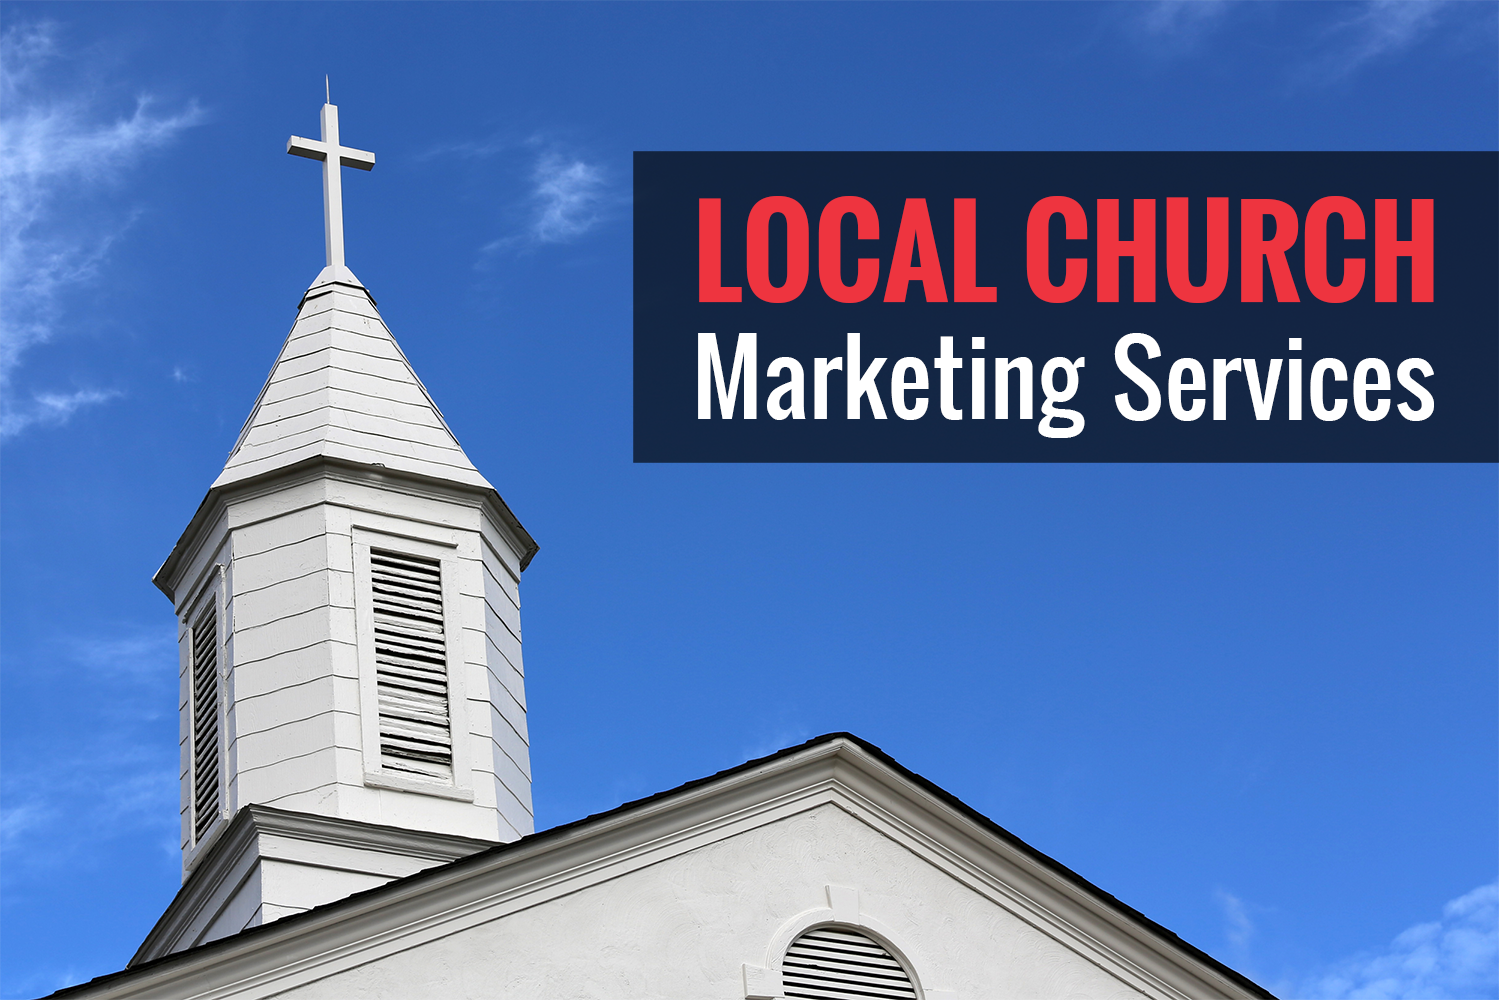 Local Church Marketing Services